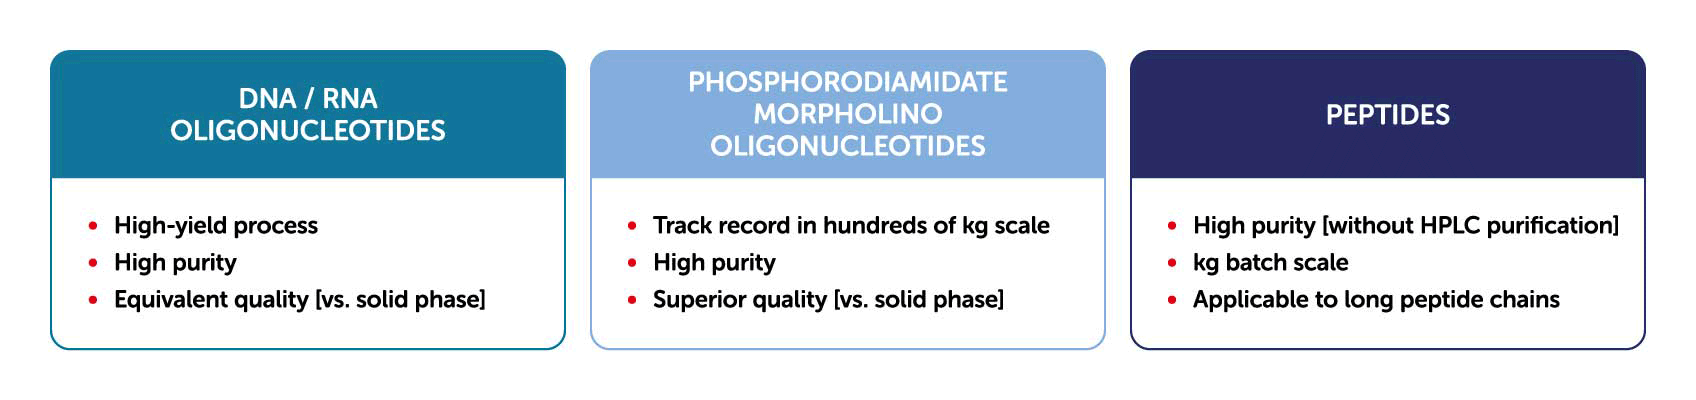 DNA/RNA Oligonucleotides, Phosphorodiamidate morpholino oligonucleotides, Peptides